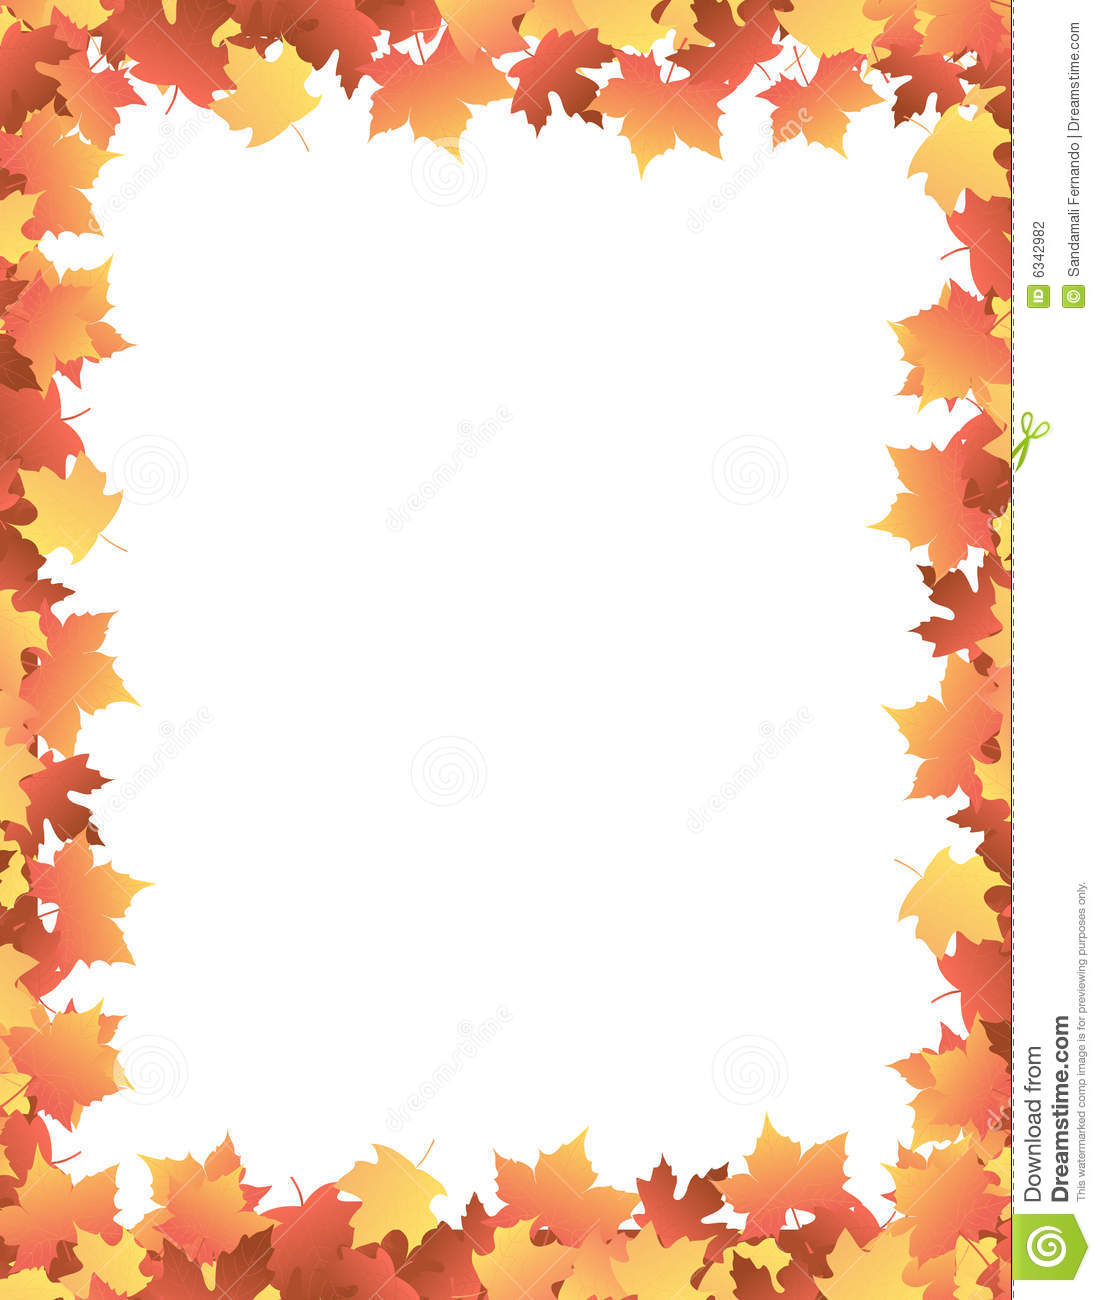 Colorful autumn leaves / Maple leaves falling background / border ...